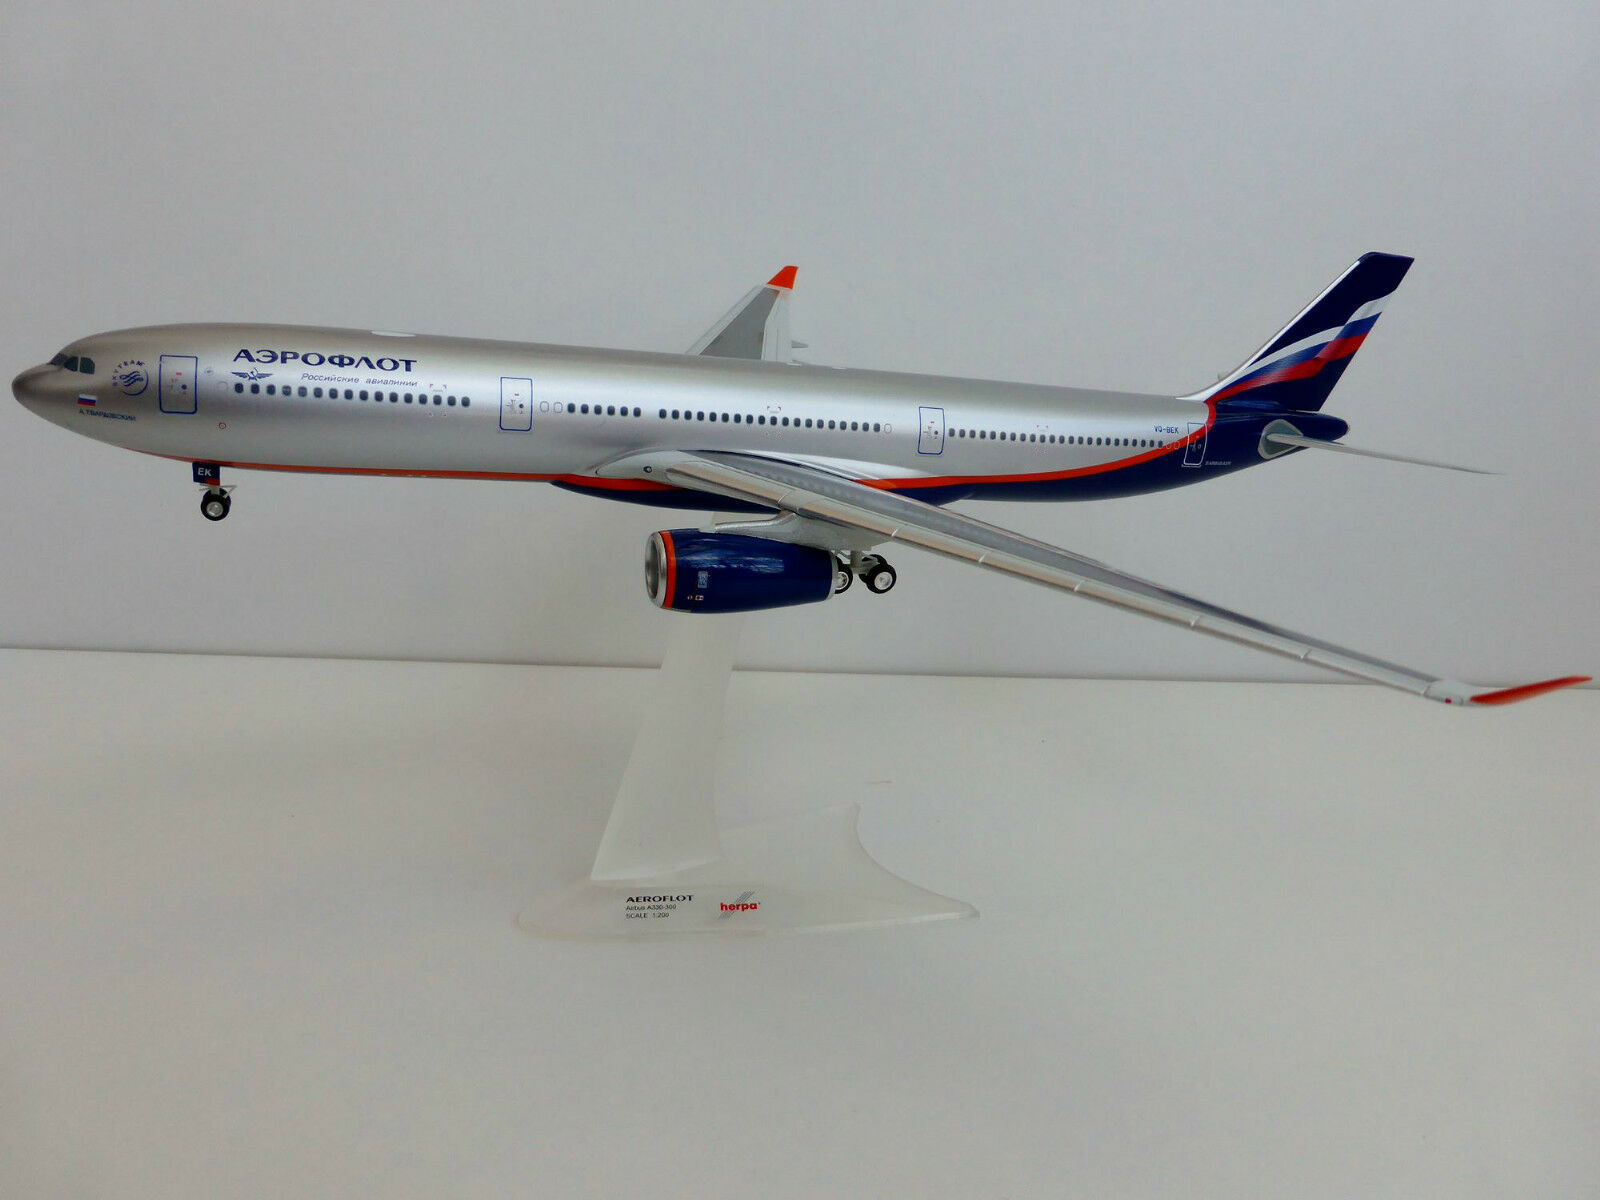 AEROFLOT AEROFLOT AEROFLOT Airbus A330-300 1 200 Herpa A330 A 330 555609 VQ-BEK RUSSIAN AIRLINES 2524f3